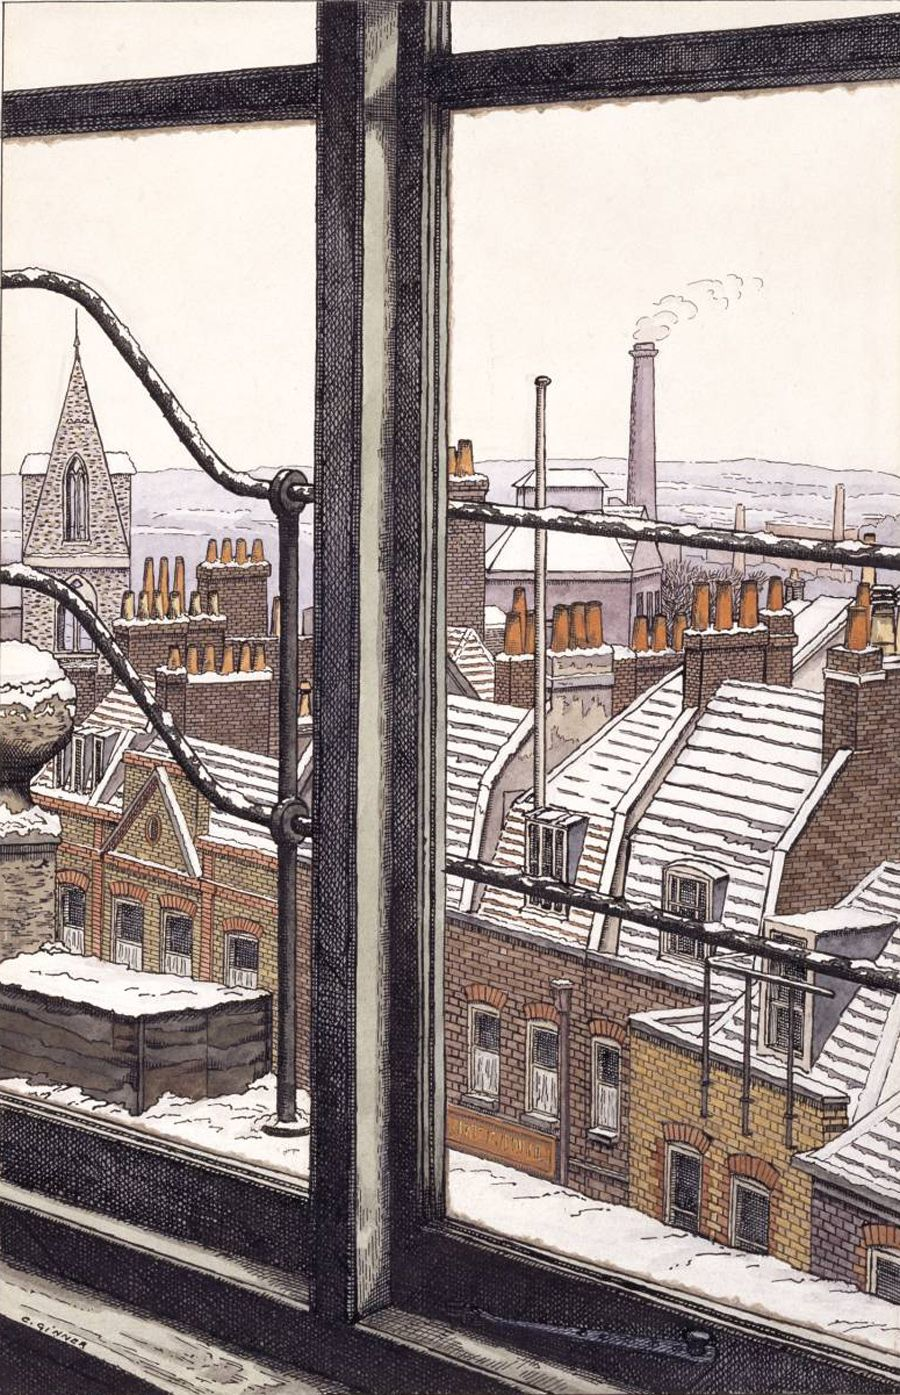 'From a Hampstead Window' ― ink, watercolour and graphite on paper by Charles Ginner (1923). #PaintedLondon